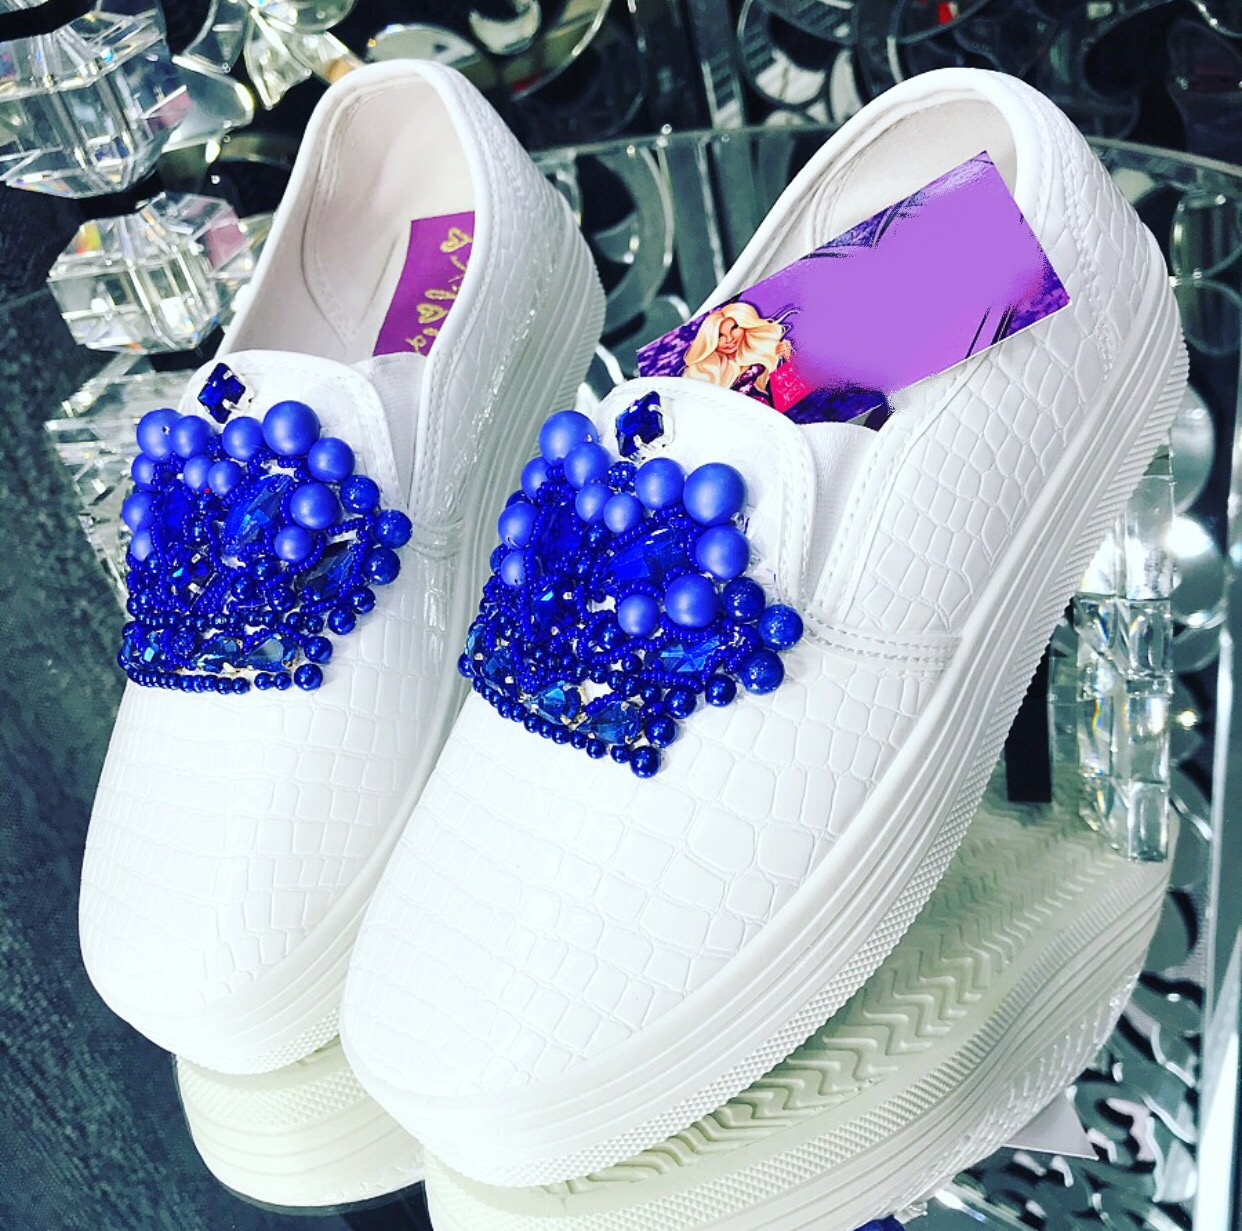 Embellished loafers and snapback